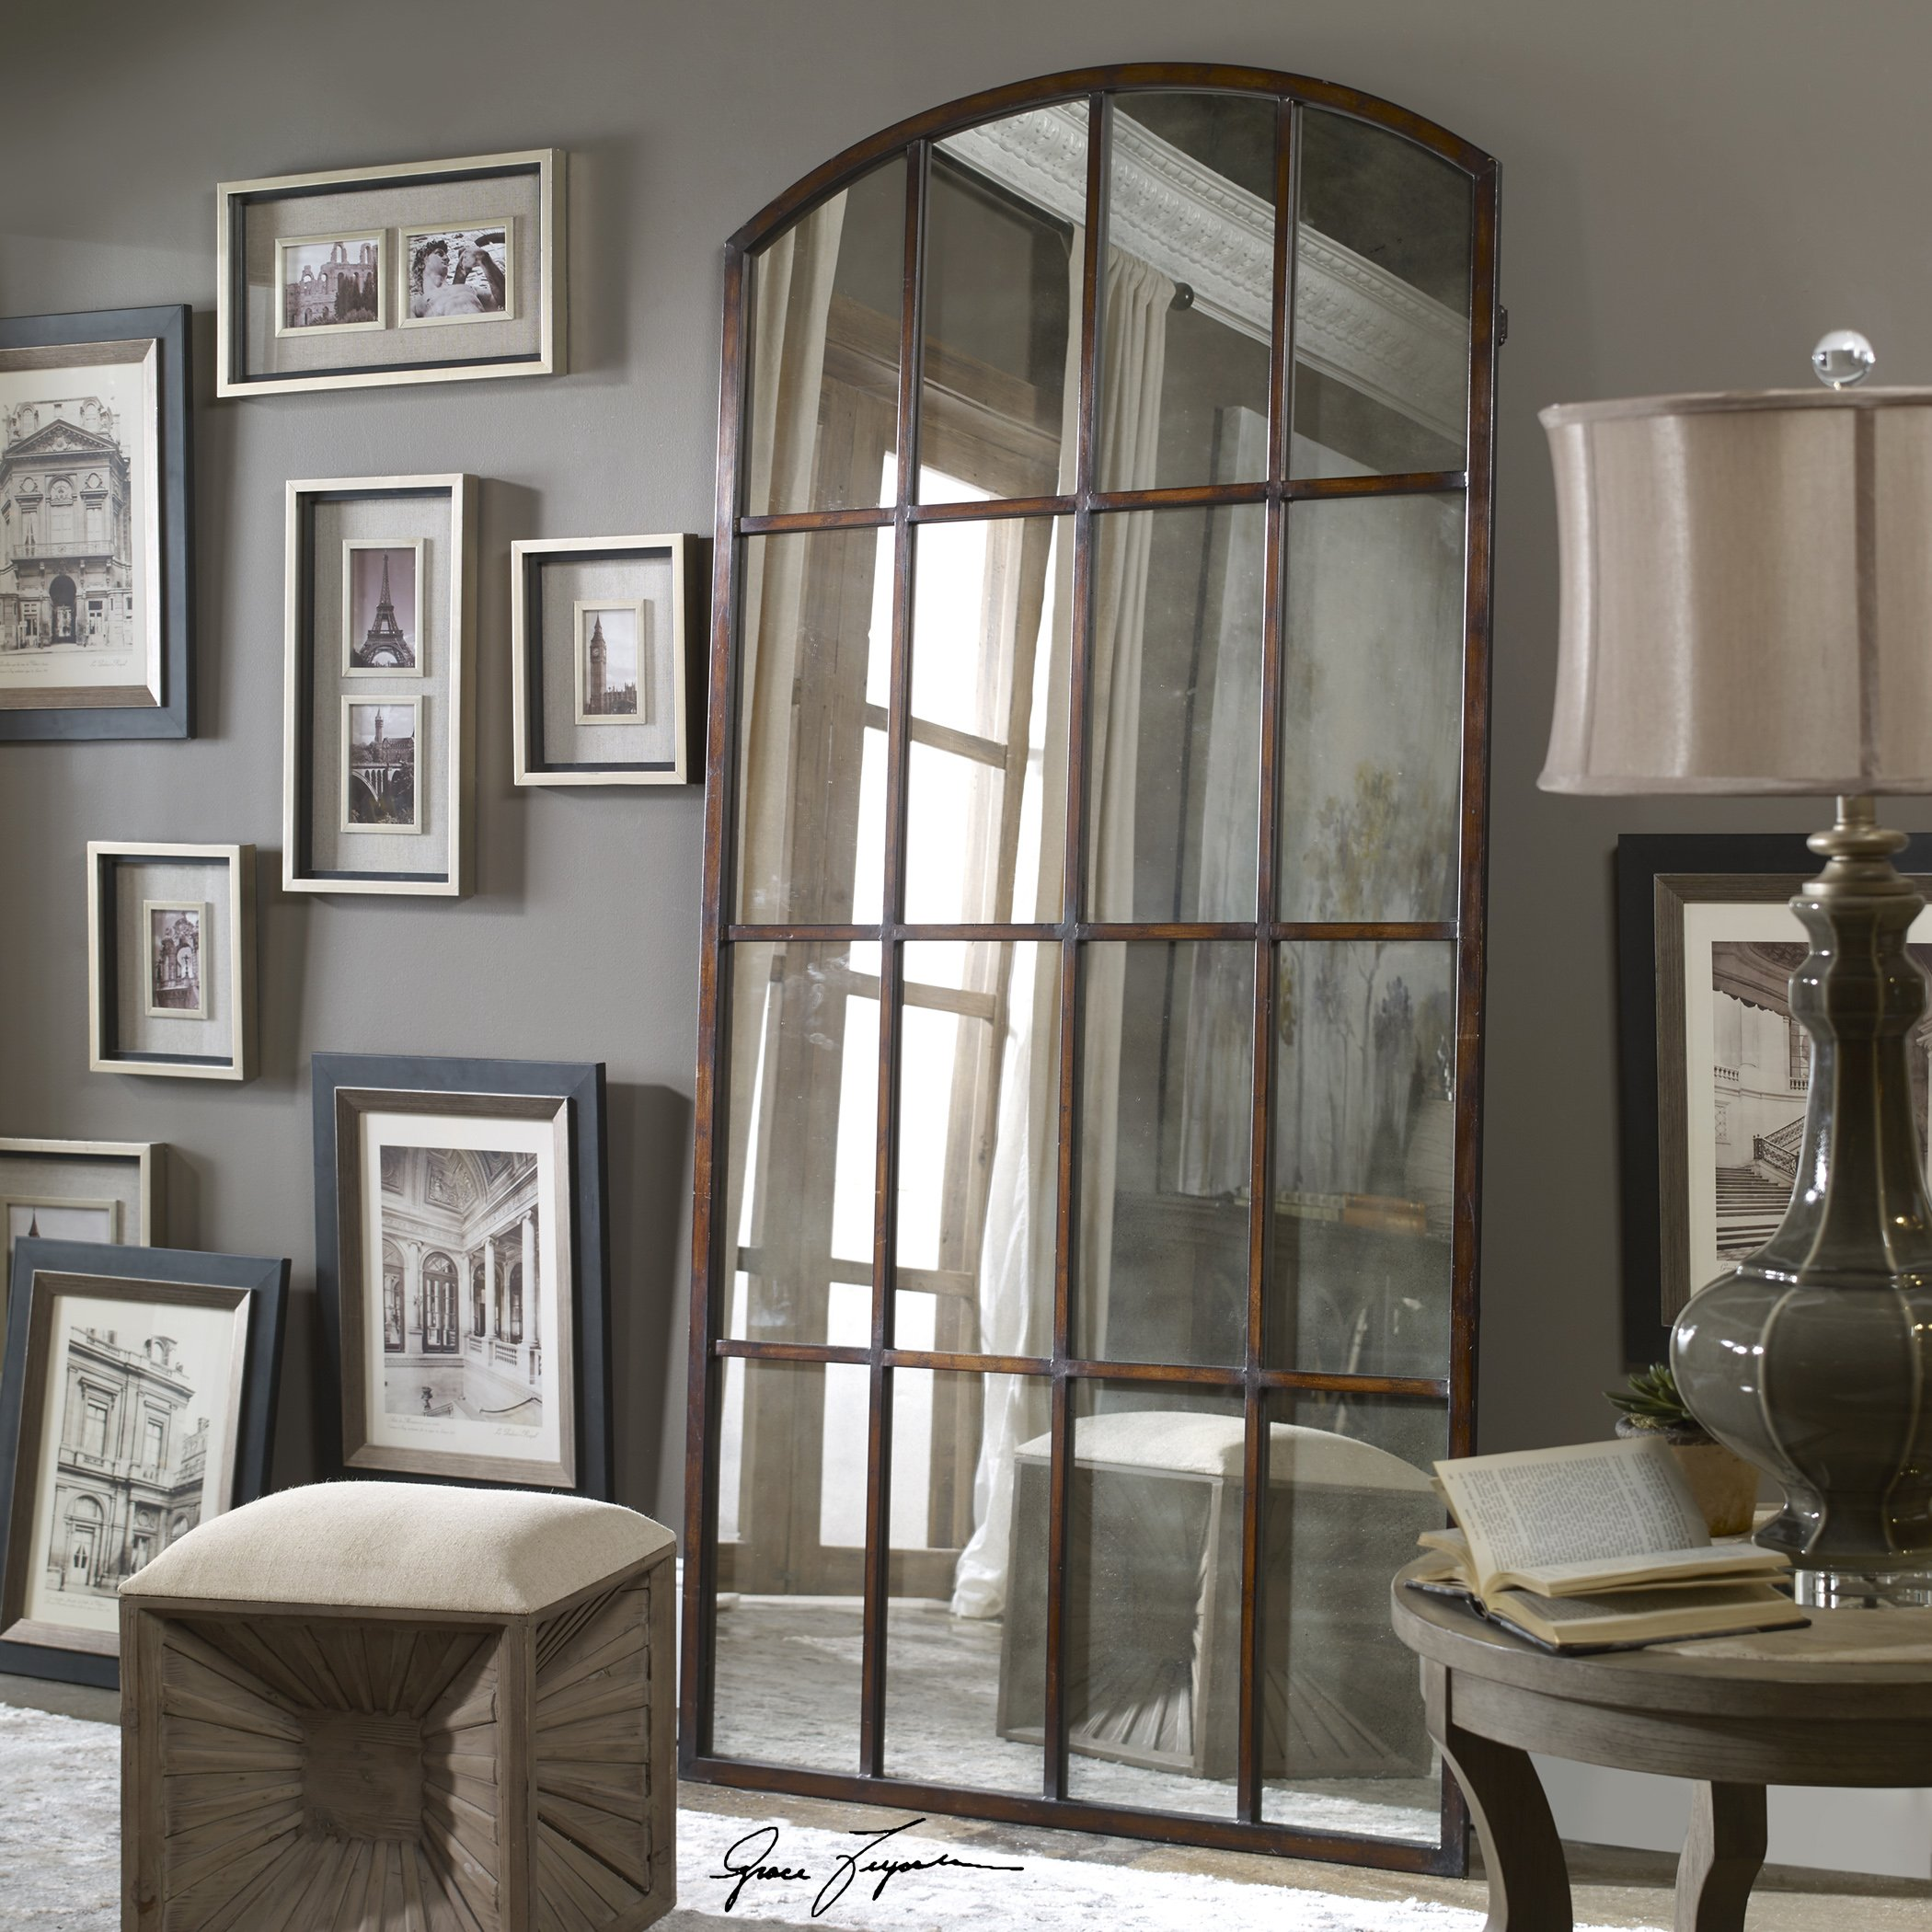 Antique-style mirror leaning against a living room wall